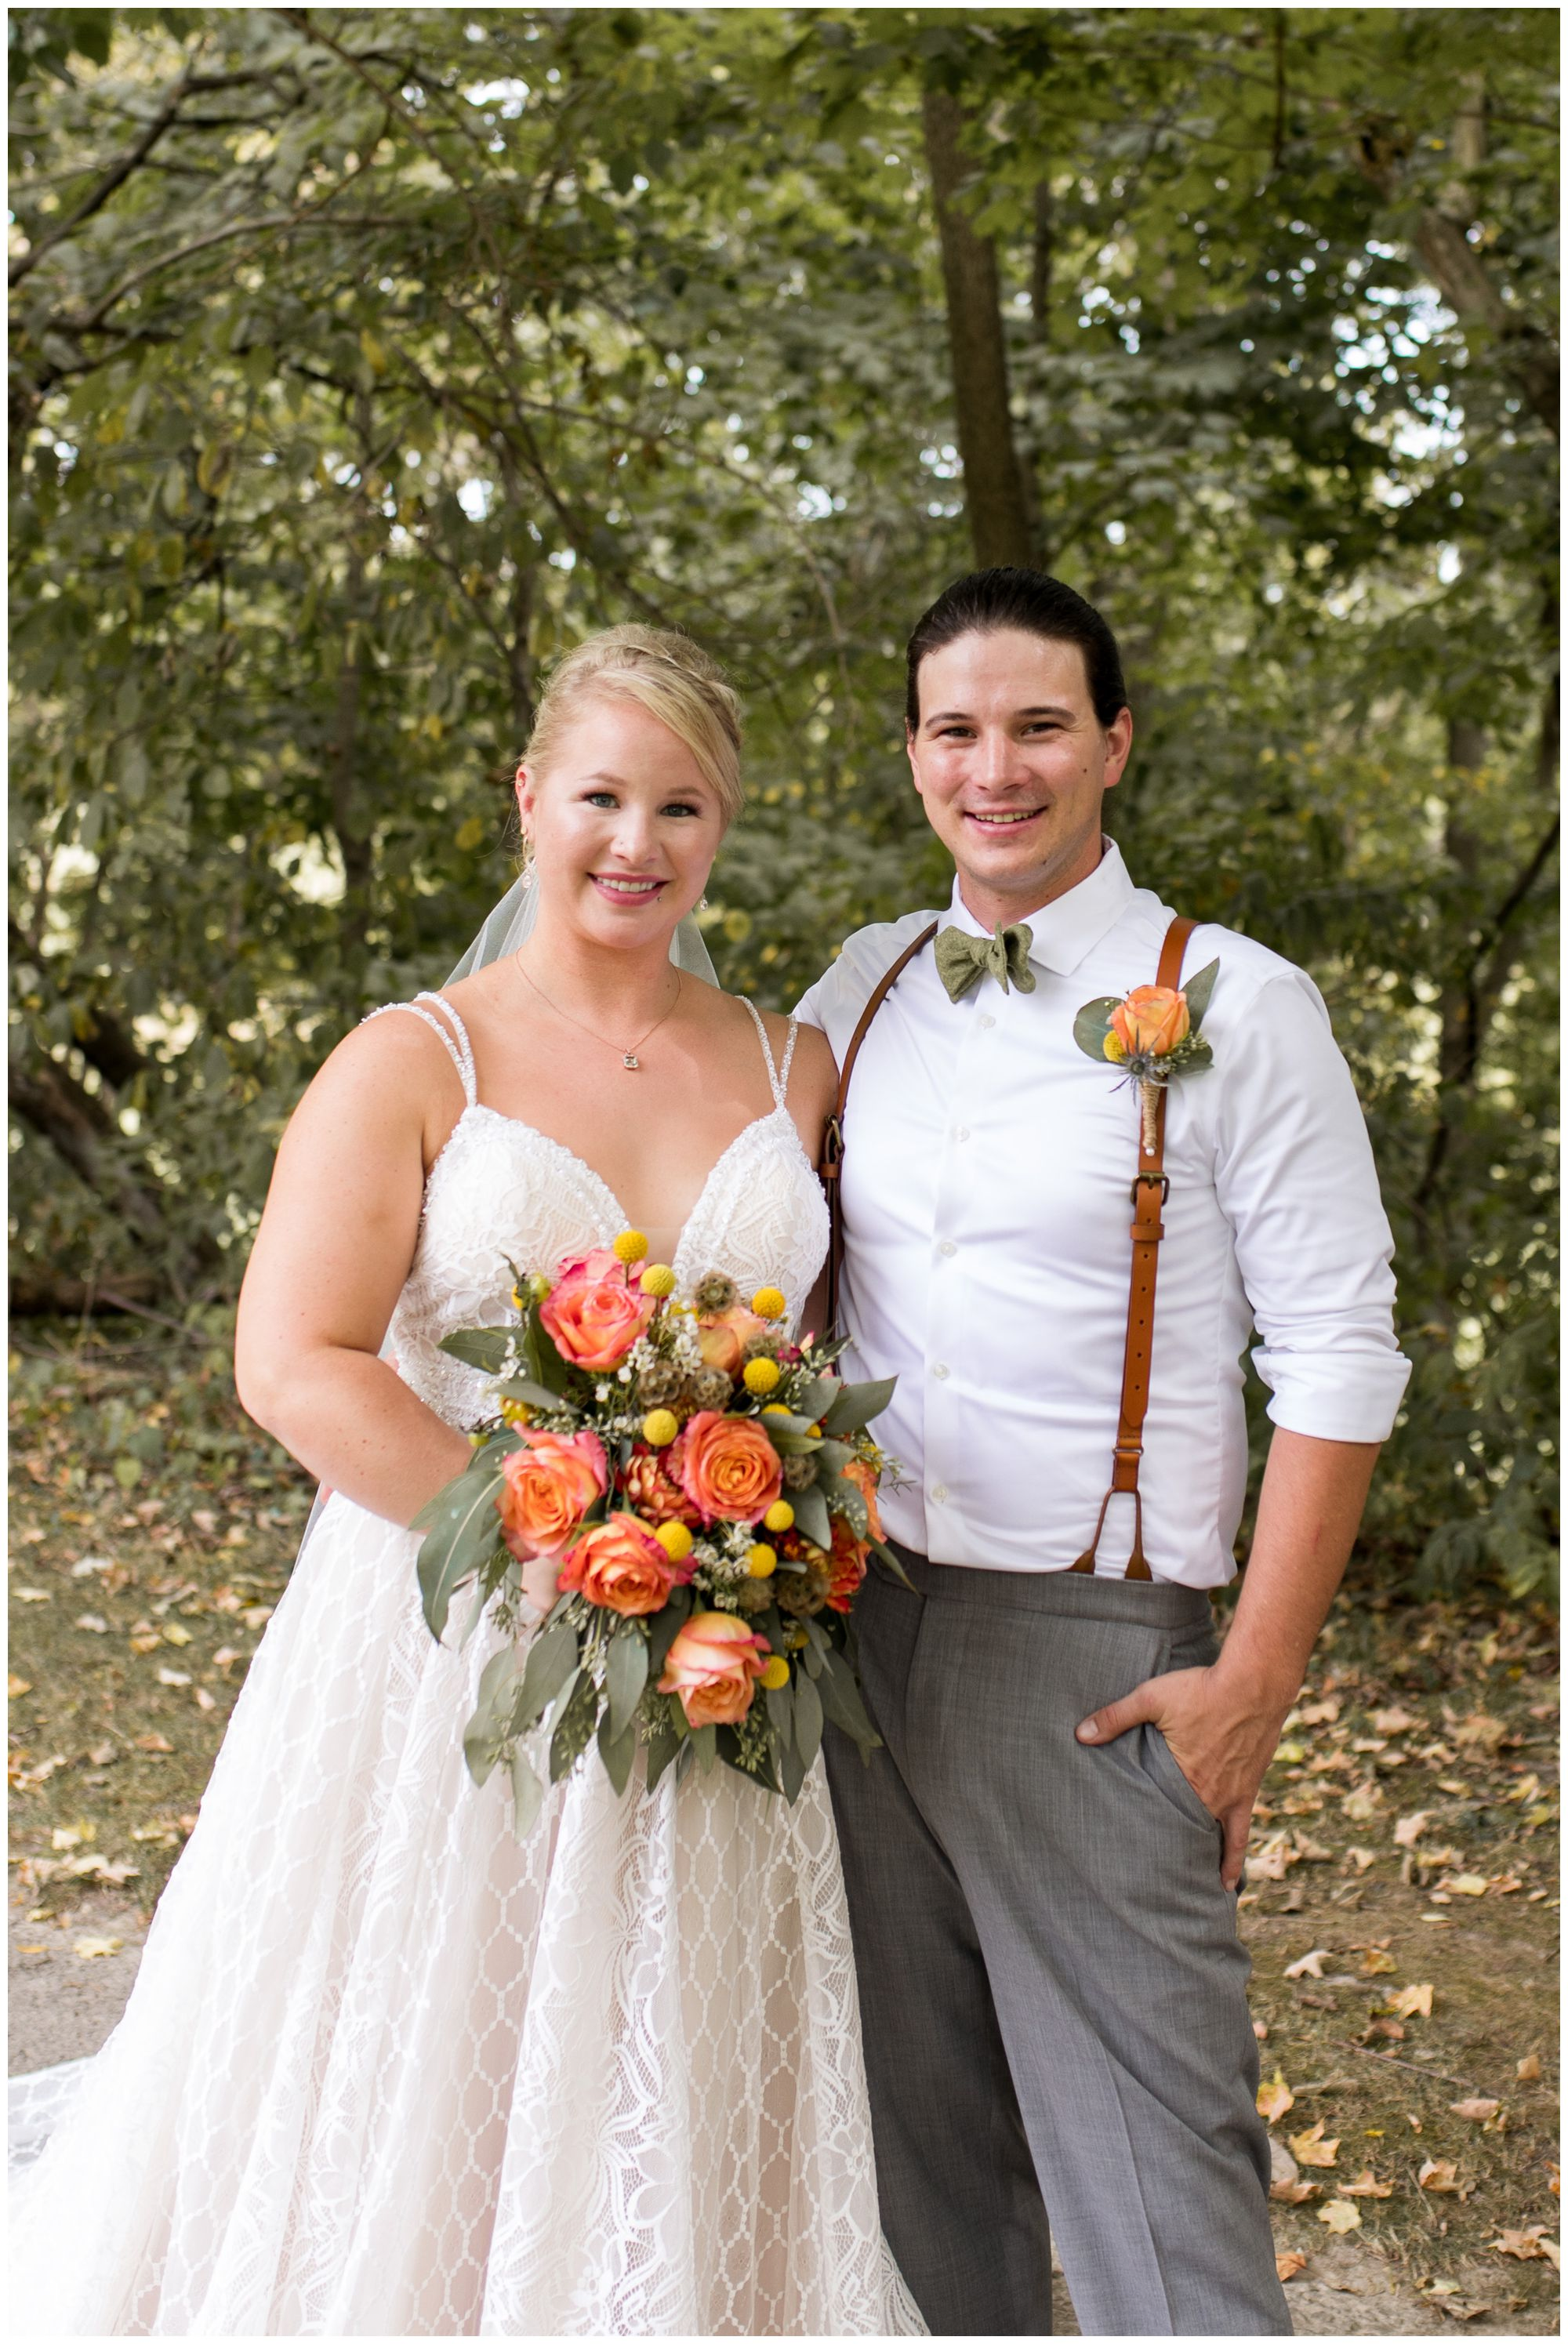 Forest Park bride and groom portraits in Noblesville Indiana